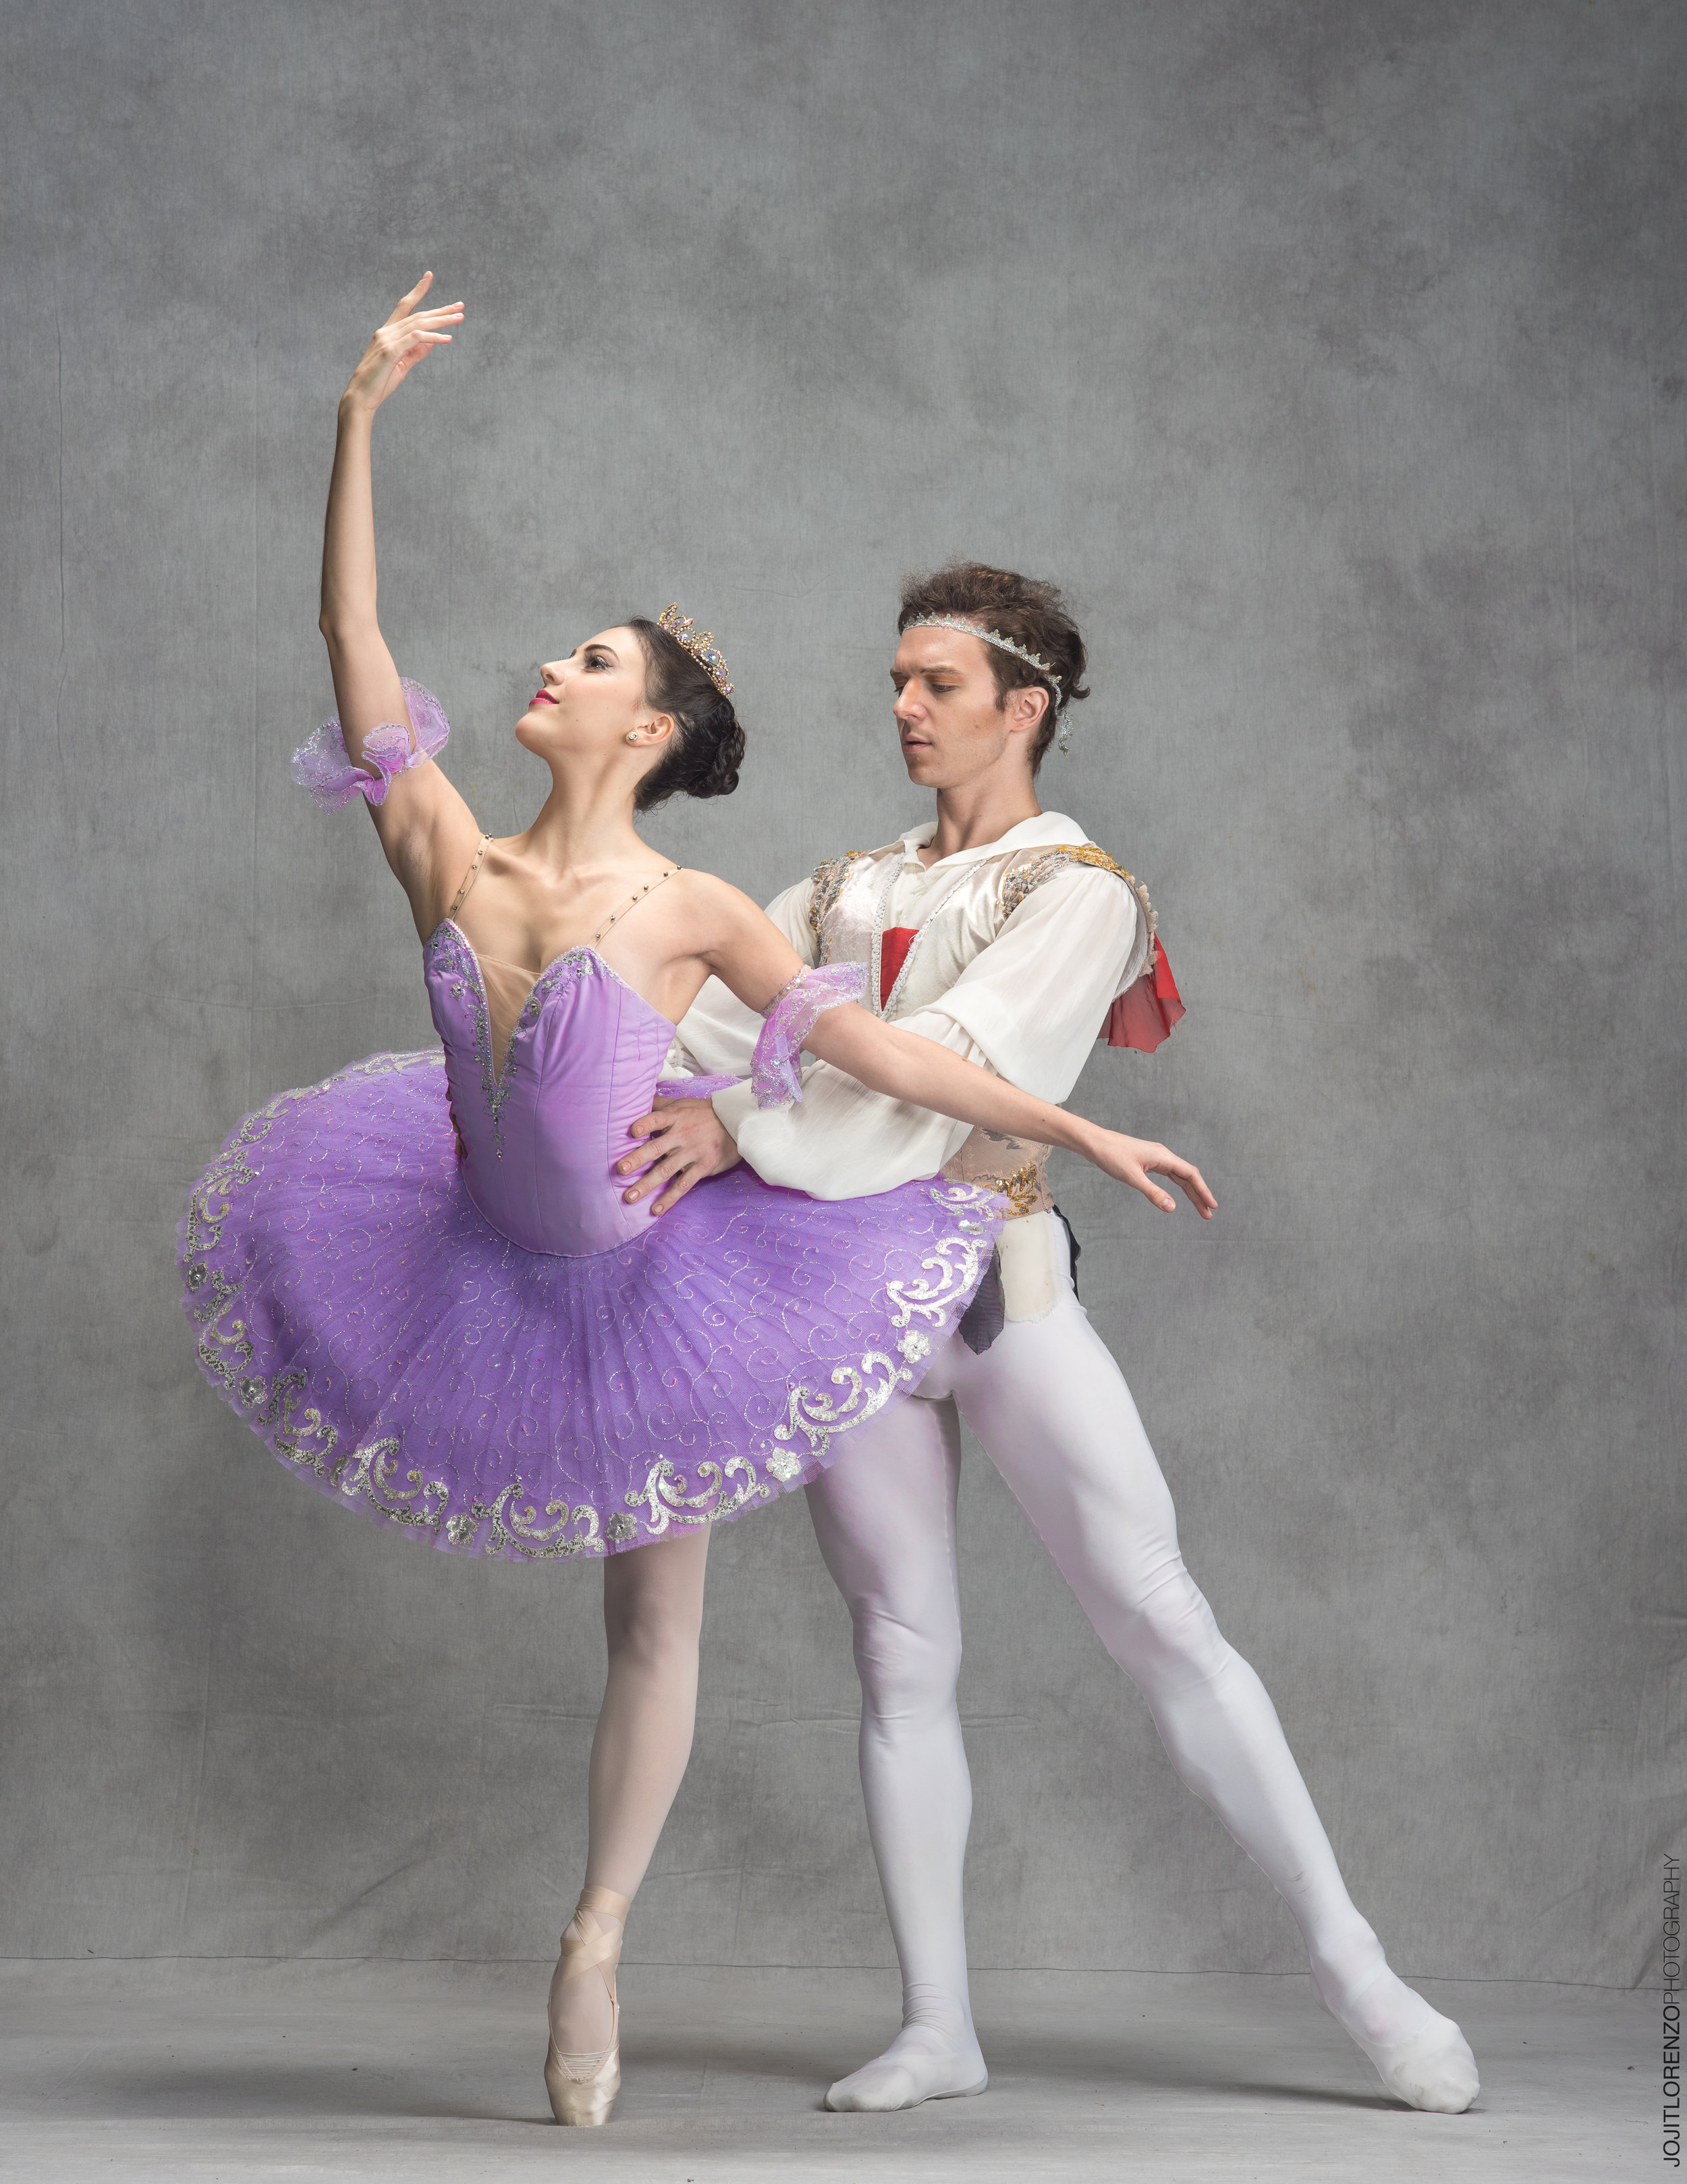 Ballet Manila resident guest principals Katherine Barkman and Joseph Phillips take on the lead roles in the full-length  Le Corsaire , with the former debuting as Medora and the latter dancing as the pirate Conrad. Photo by Jojit Lorenzo